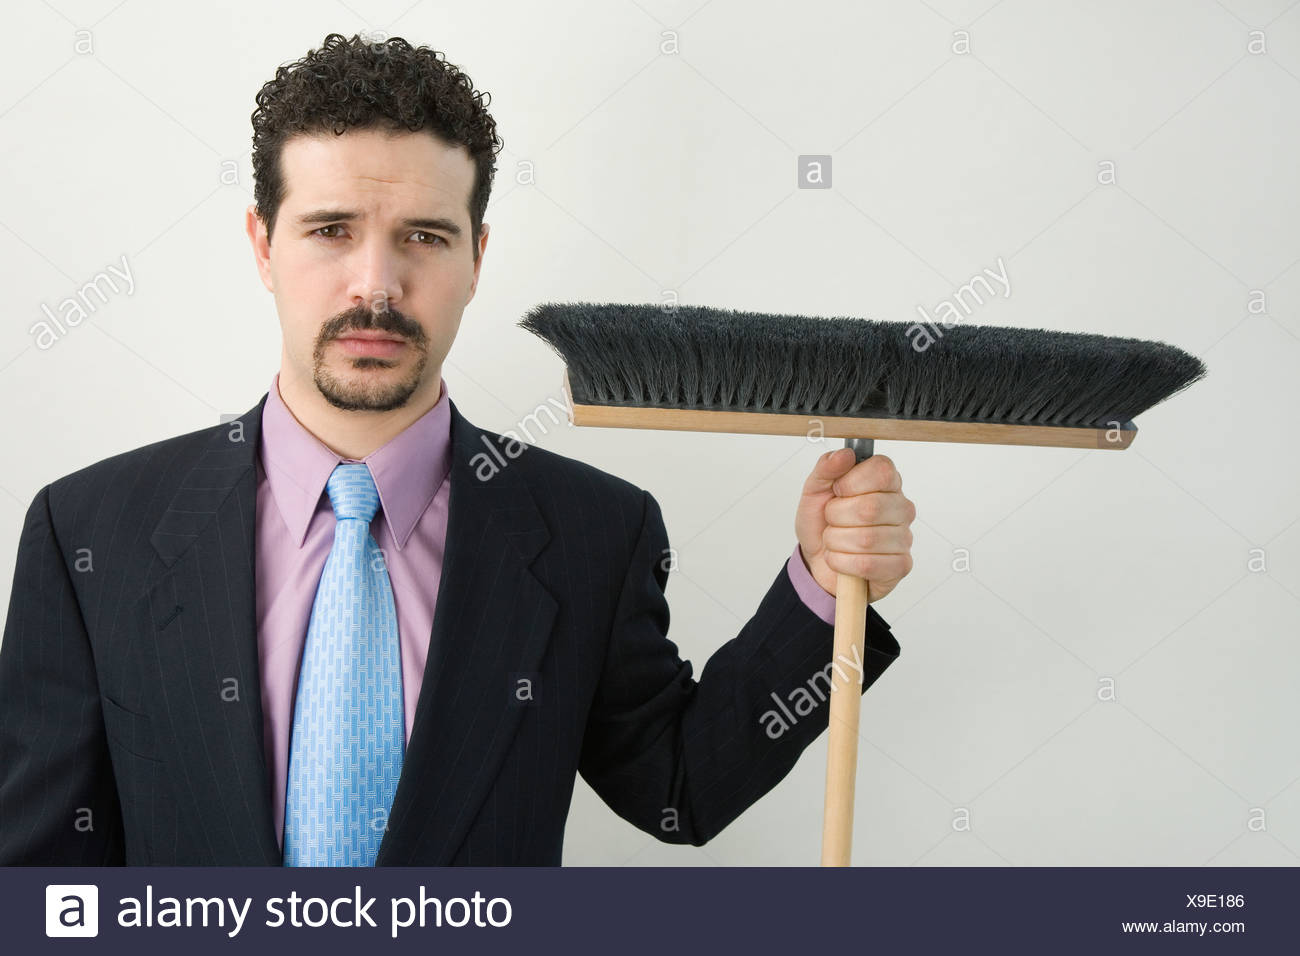 Portrait of a businessman holding a broom - Stock Image